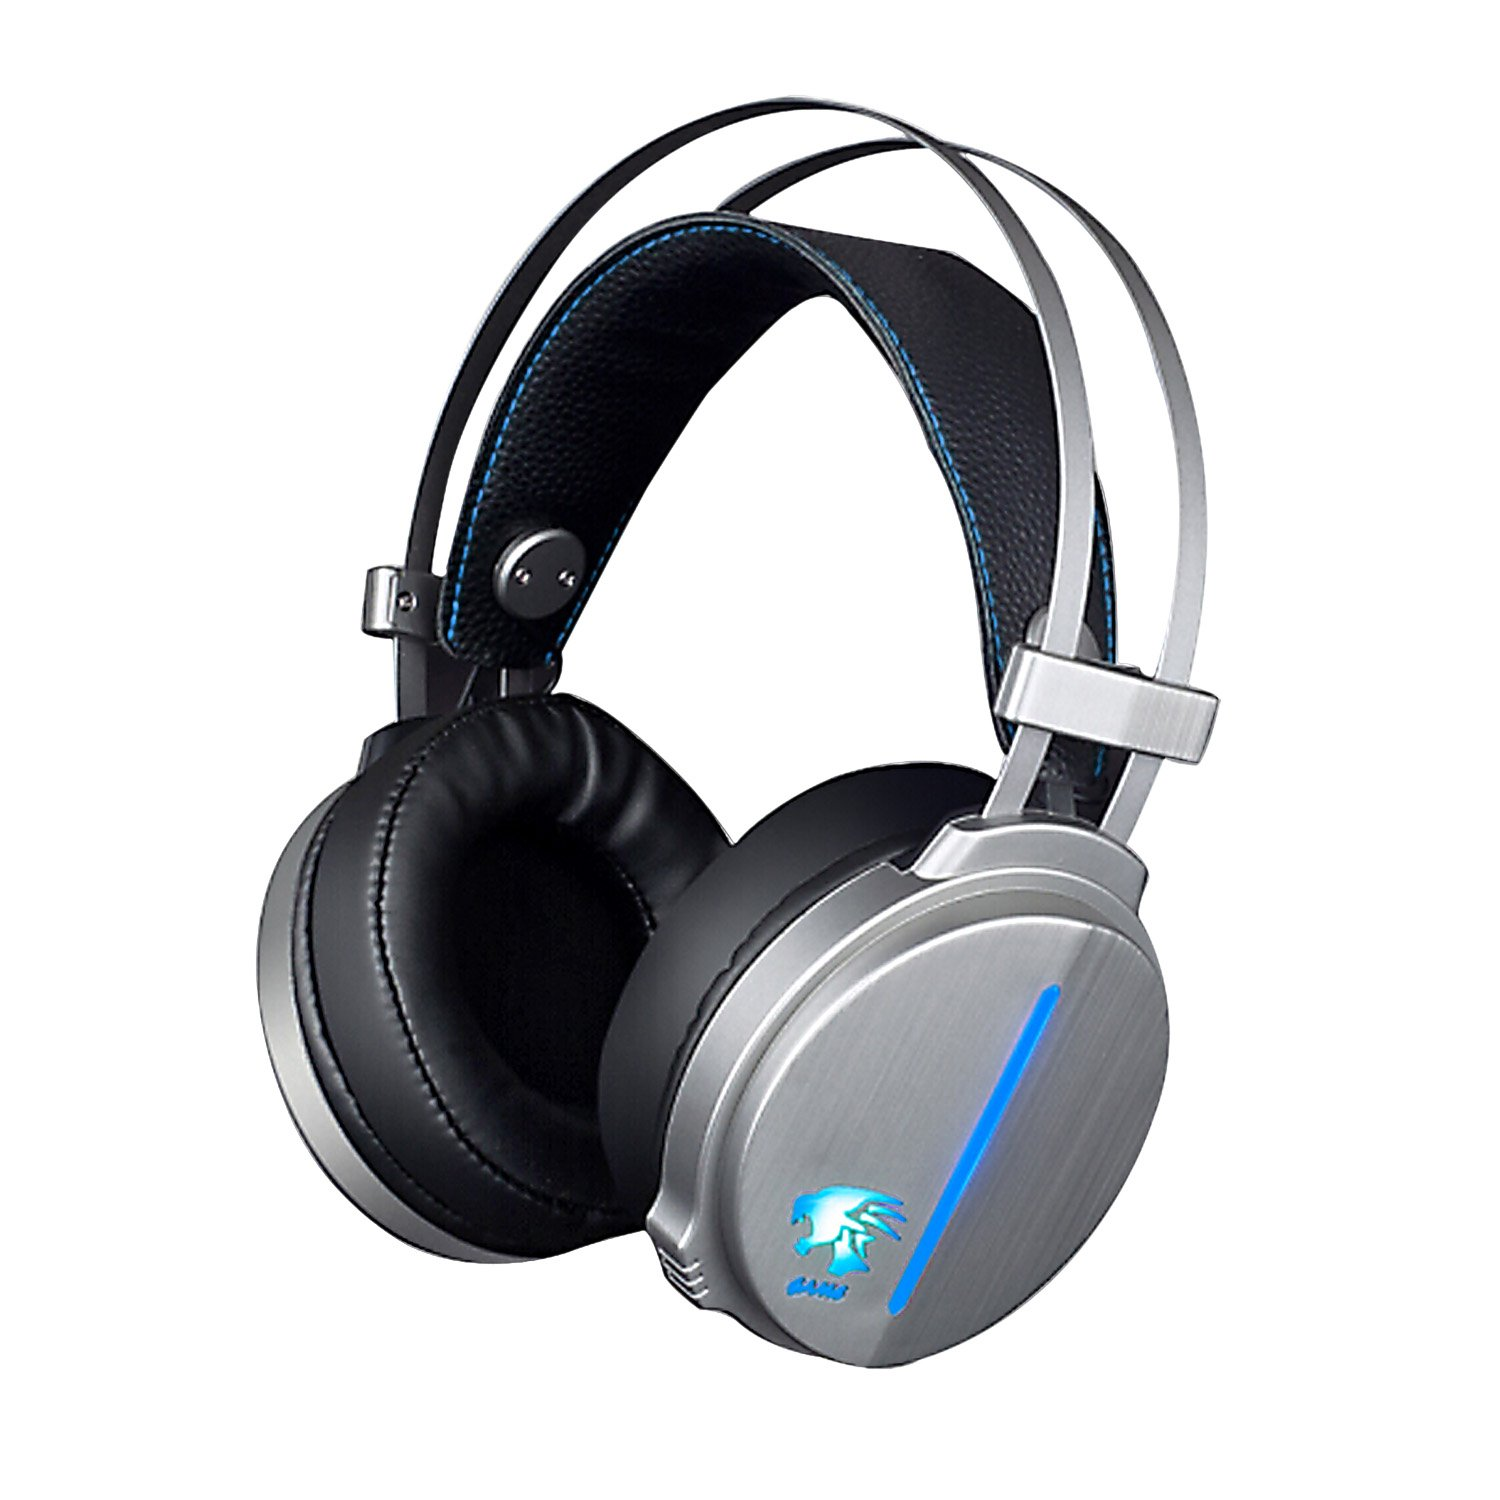 X-09 Stereo Gaming Headset 3.5mm Plug With Mic Computer Headphone Soft PU Leather Ear-cushion with Mic and LED Light for Laptop Computer/Cellphone by ANGLEE